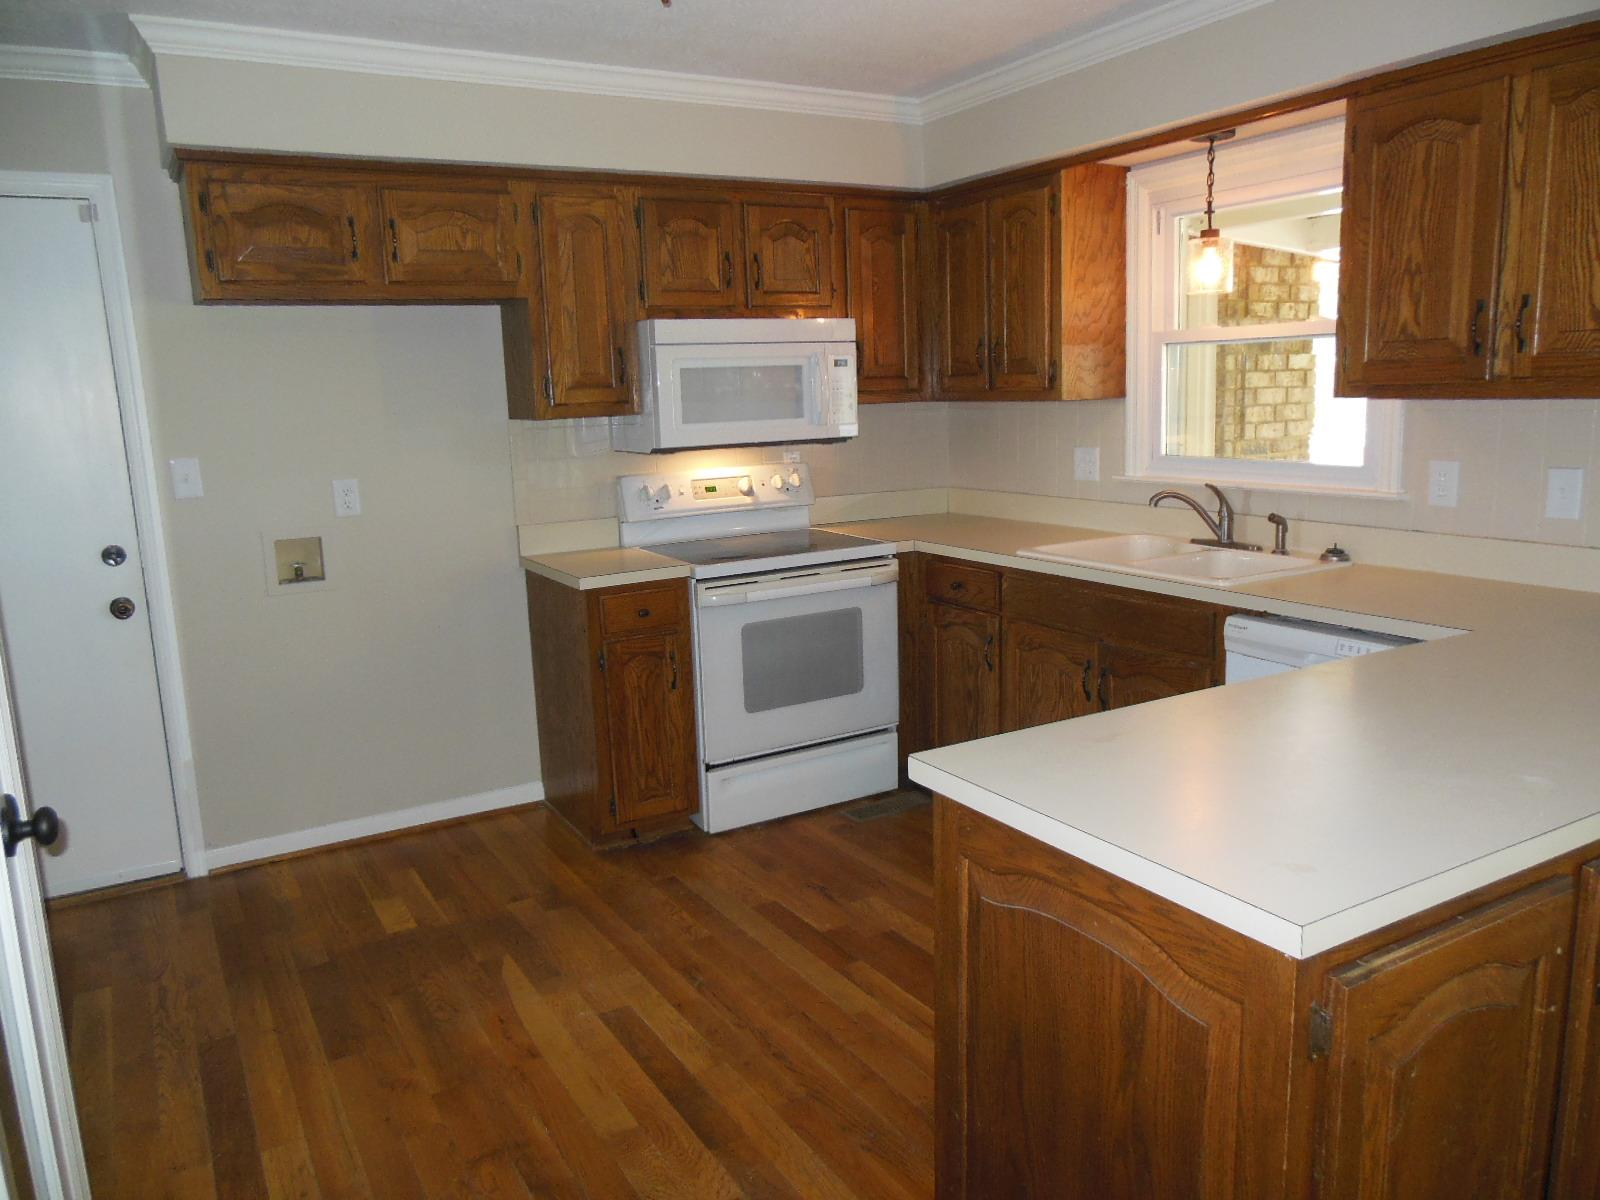 $370,000 - 5Br/3Ba -  for Sale in Horace L Riddle, Cedar Hill